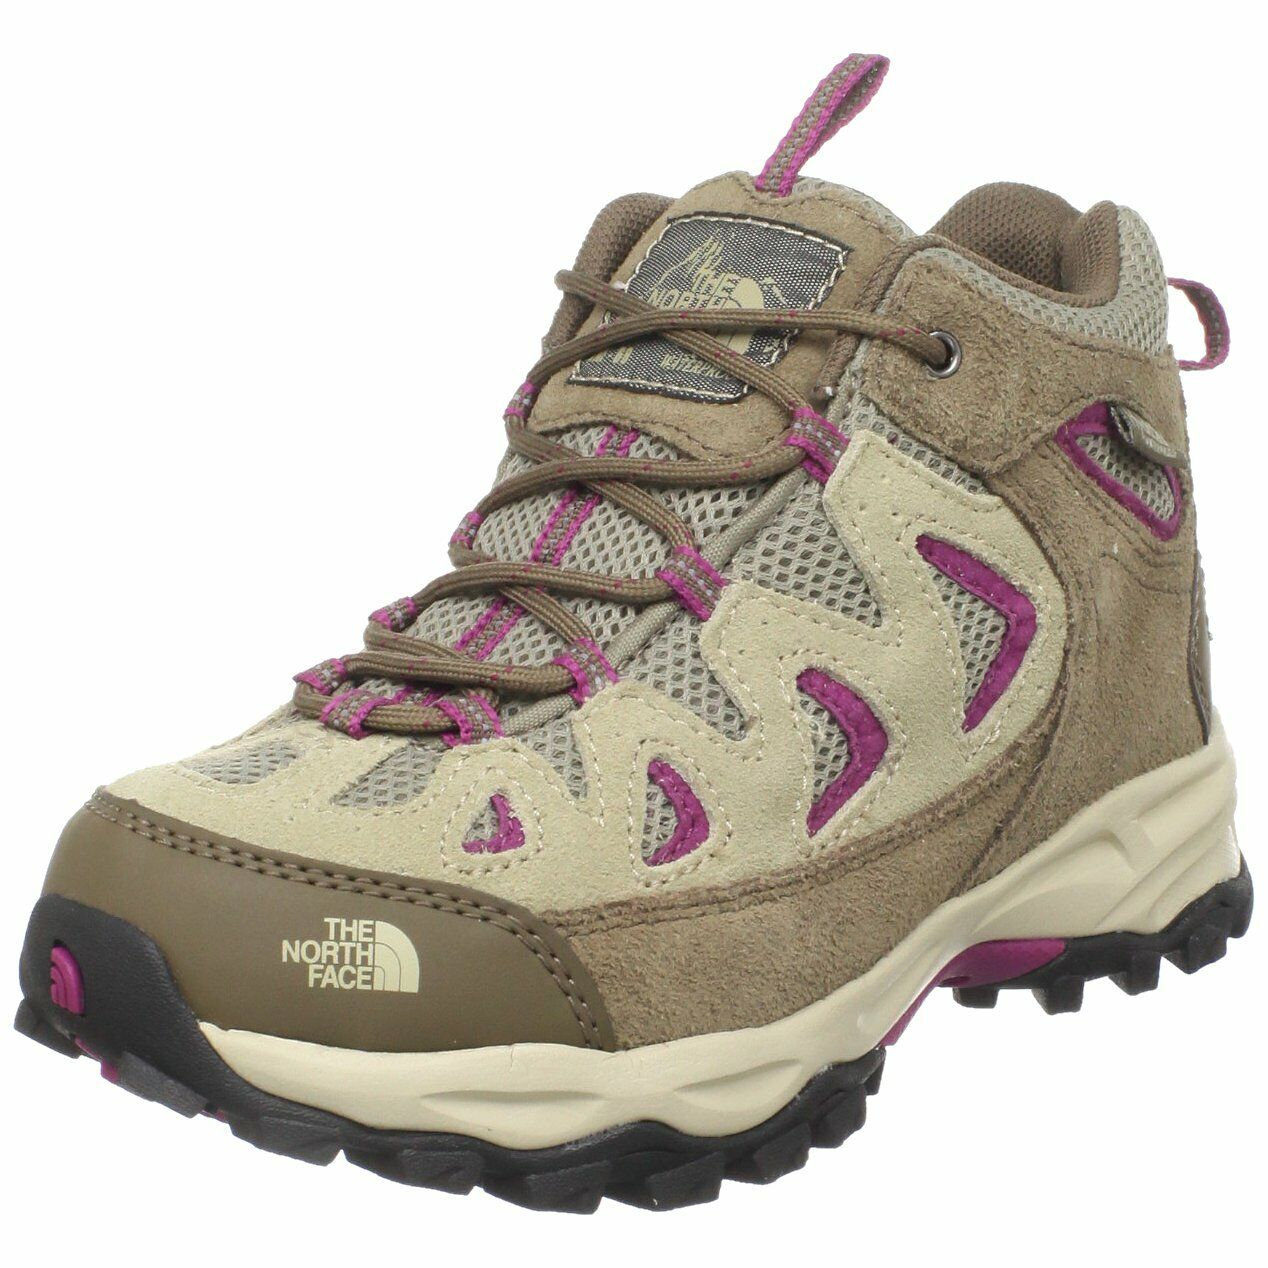 The North Face Girls Dune Beige  Or d Vindicator WP Hiking shoes  75 NEW  choices with low price